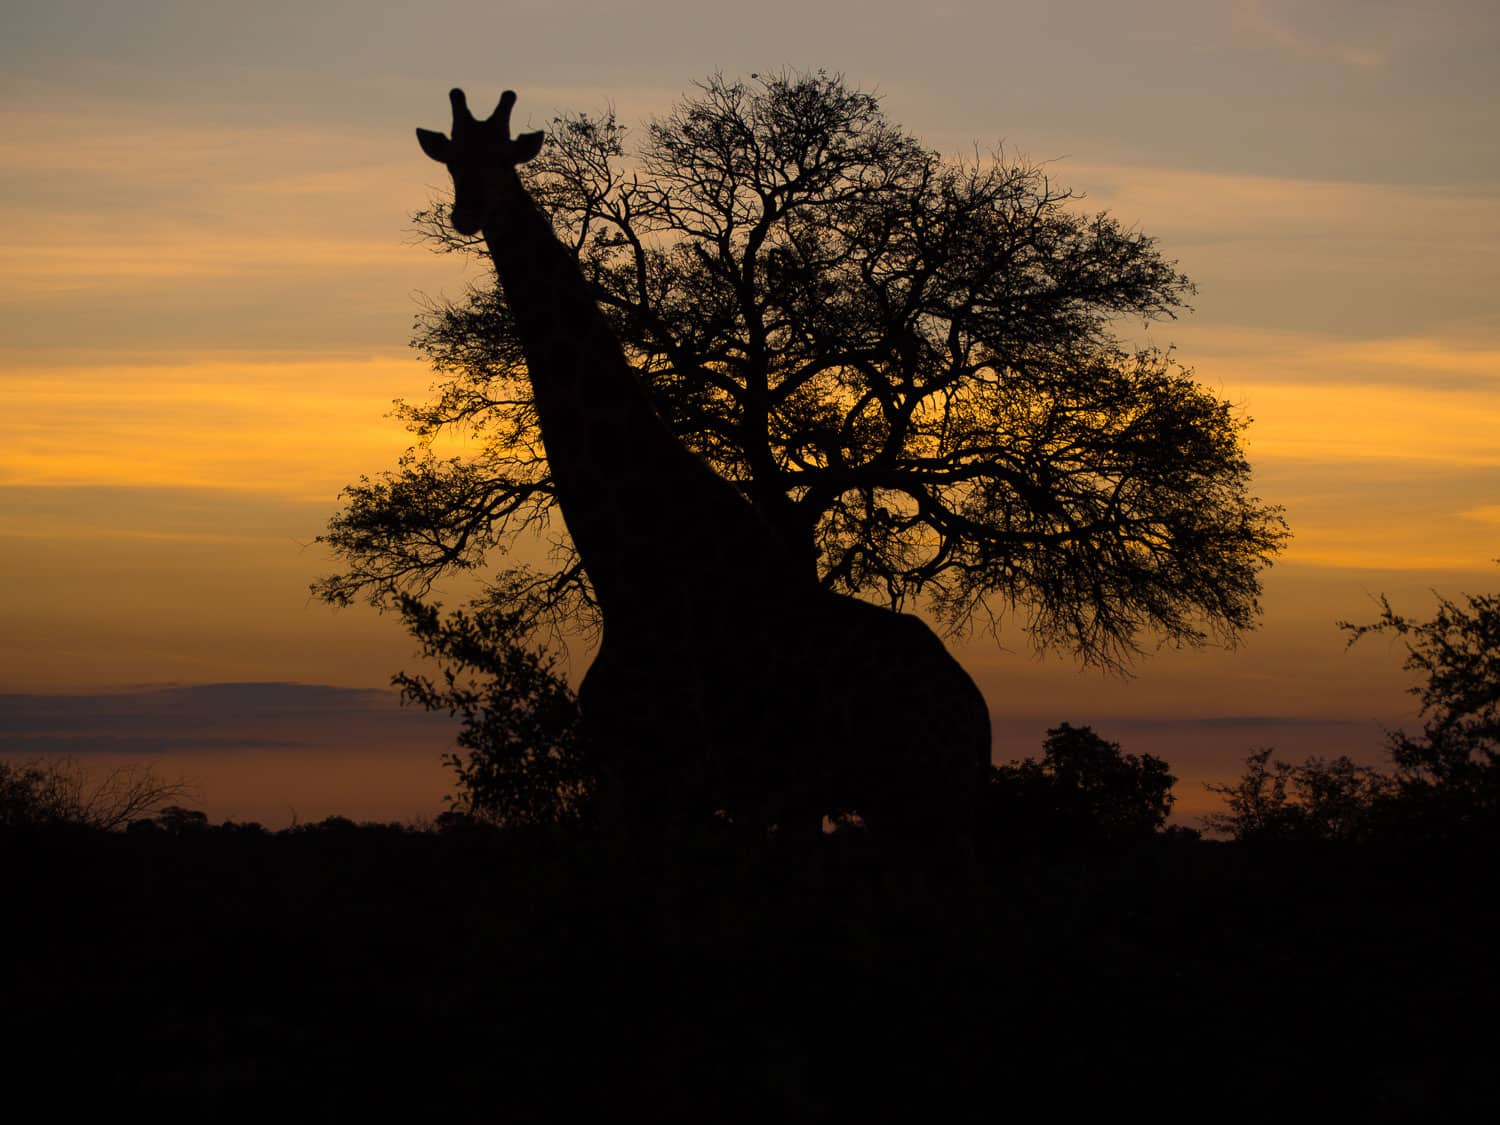 Giraffe silhouette at sunset on safari at Klaserie Sands River Camp, South Africa